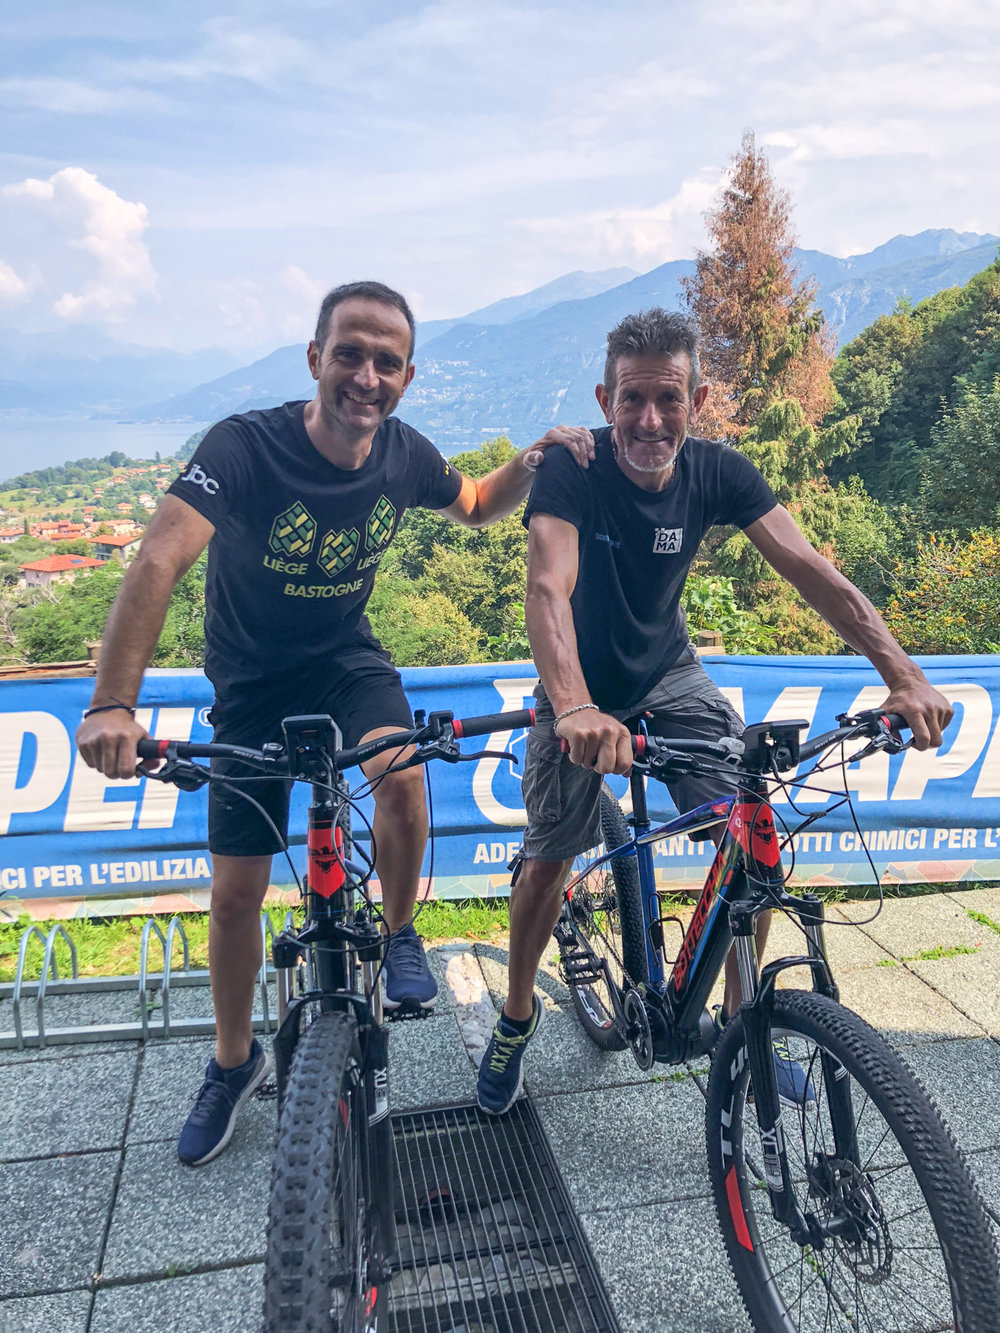 ComoLagoBike president, Luca, with Alberto waiting for you in front of the bike shop and rental point.